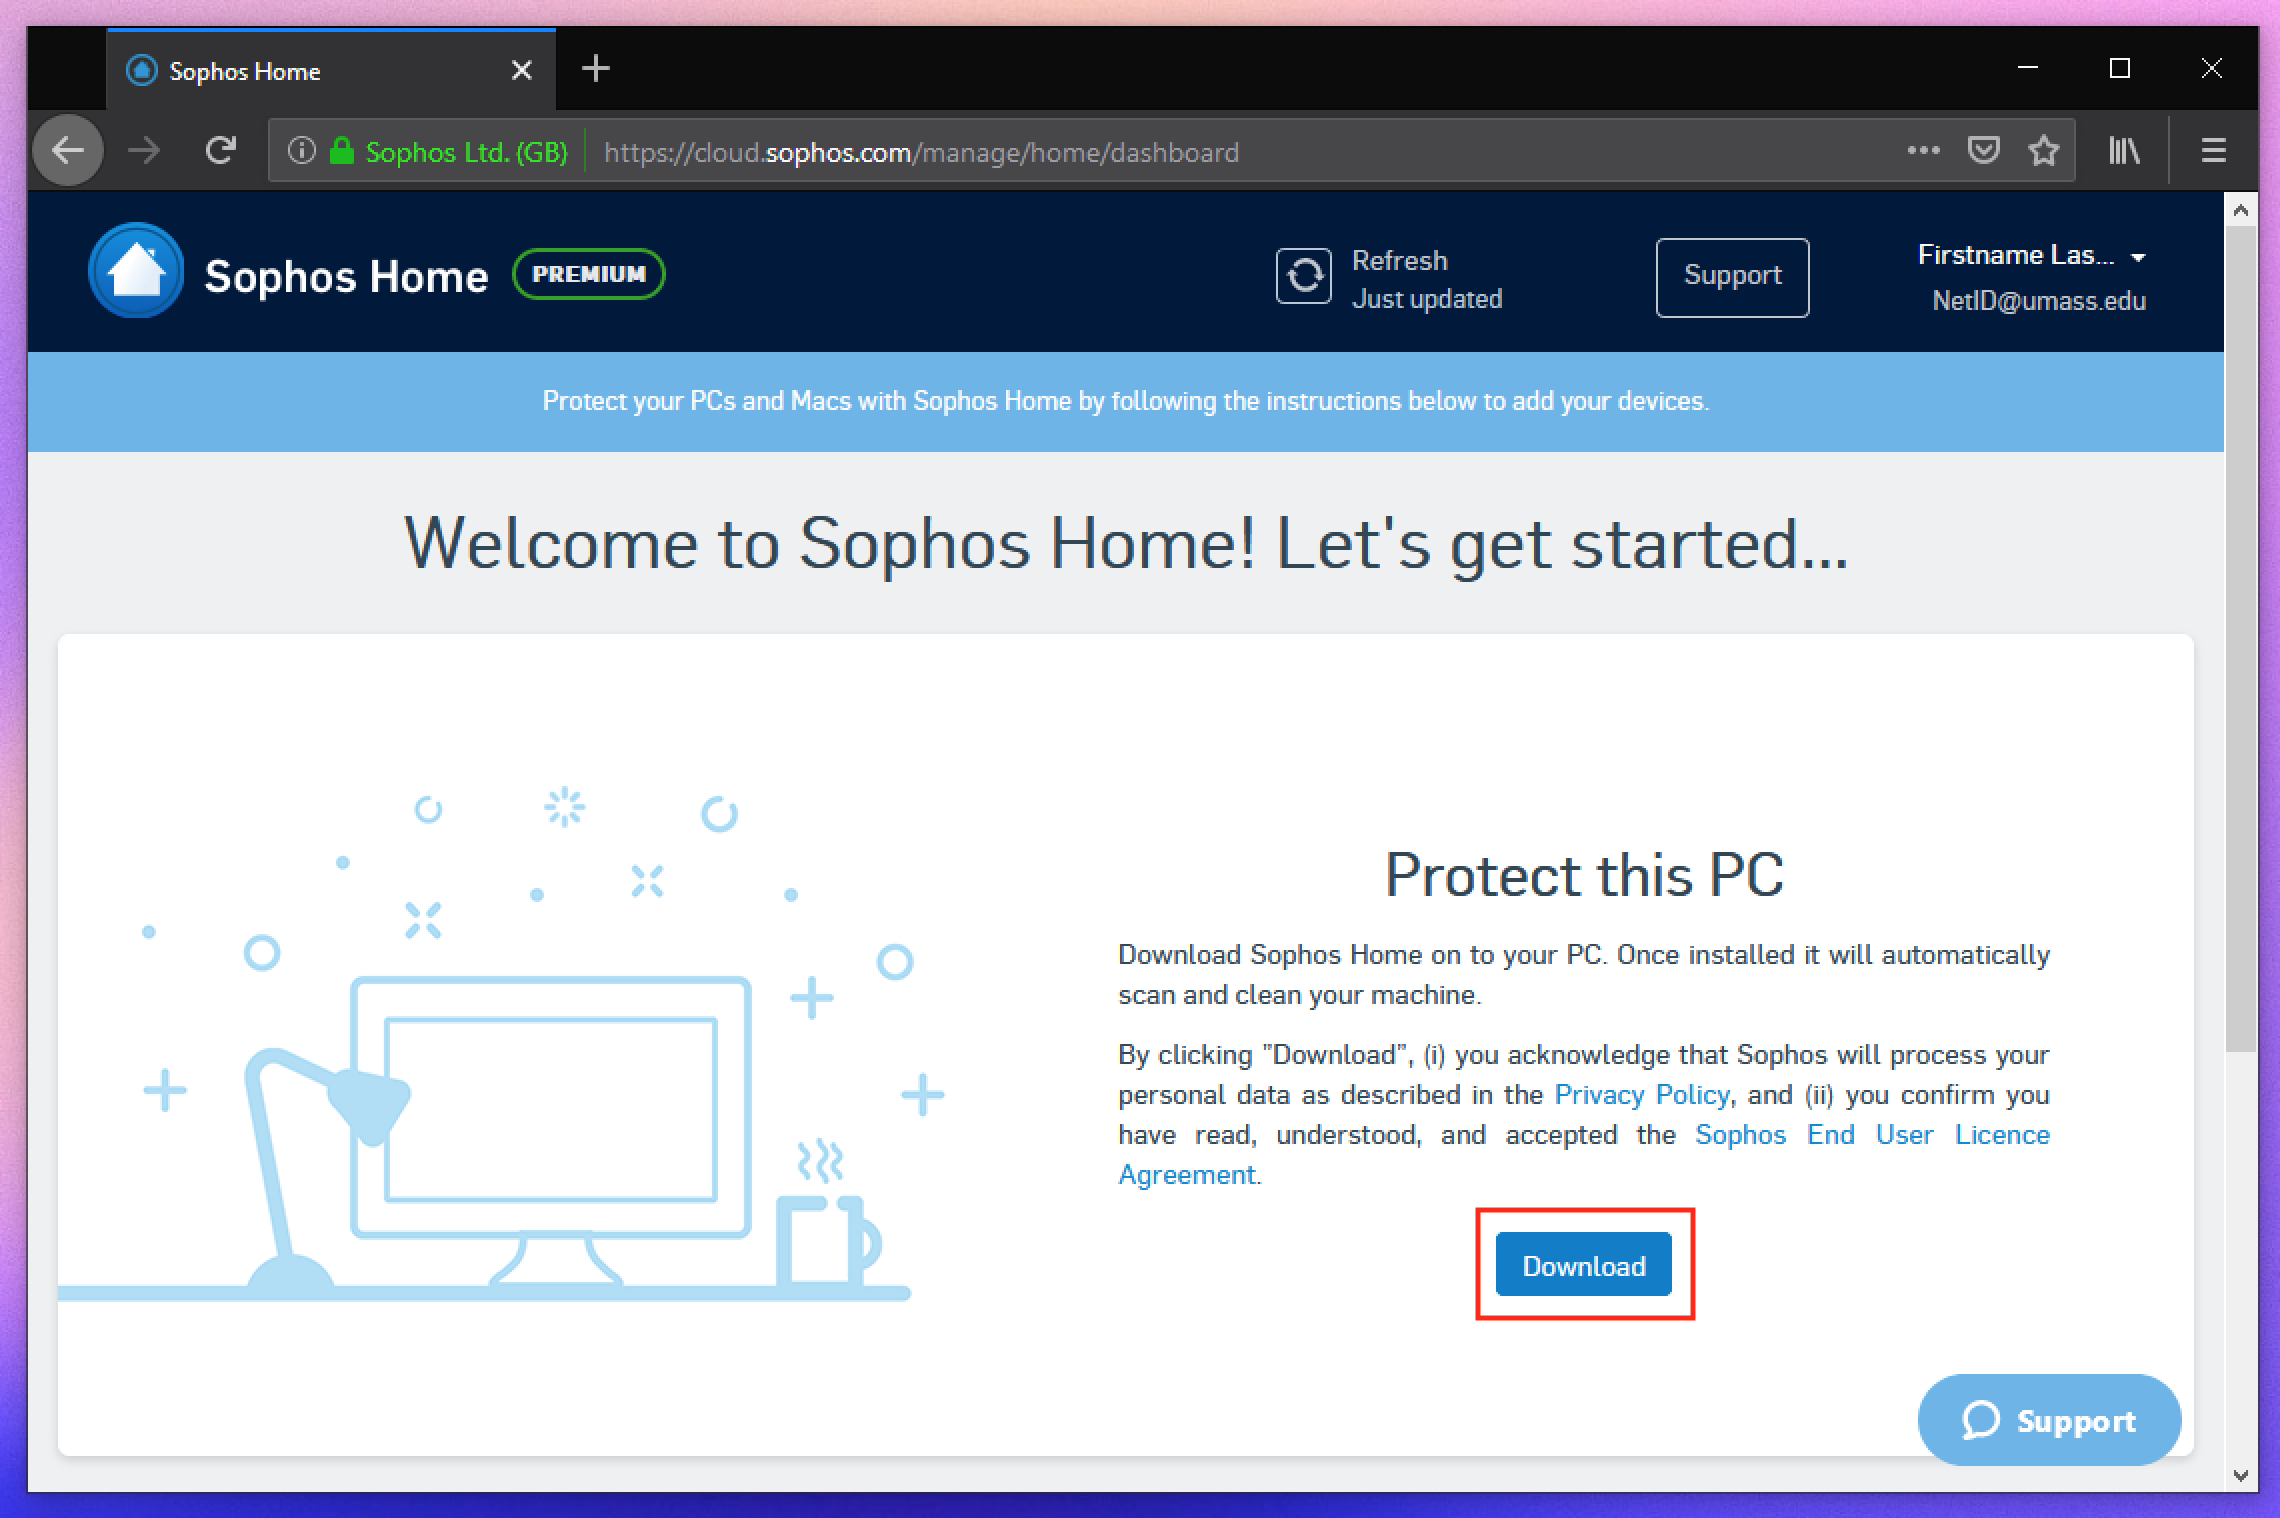 Sophos home dashboard with PC download button